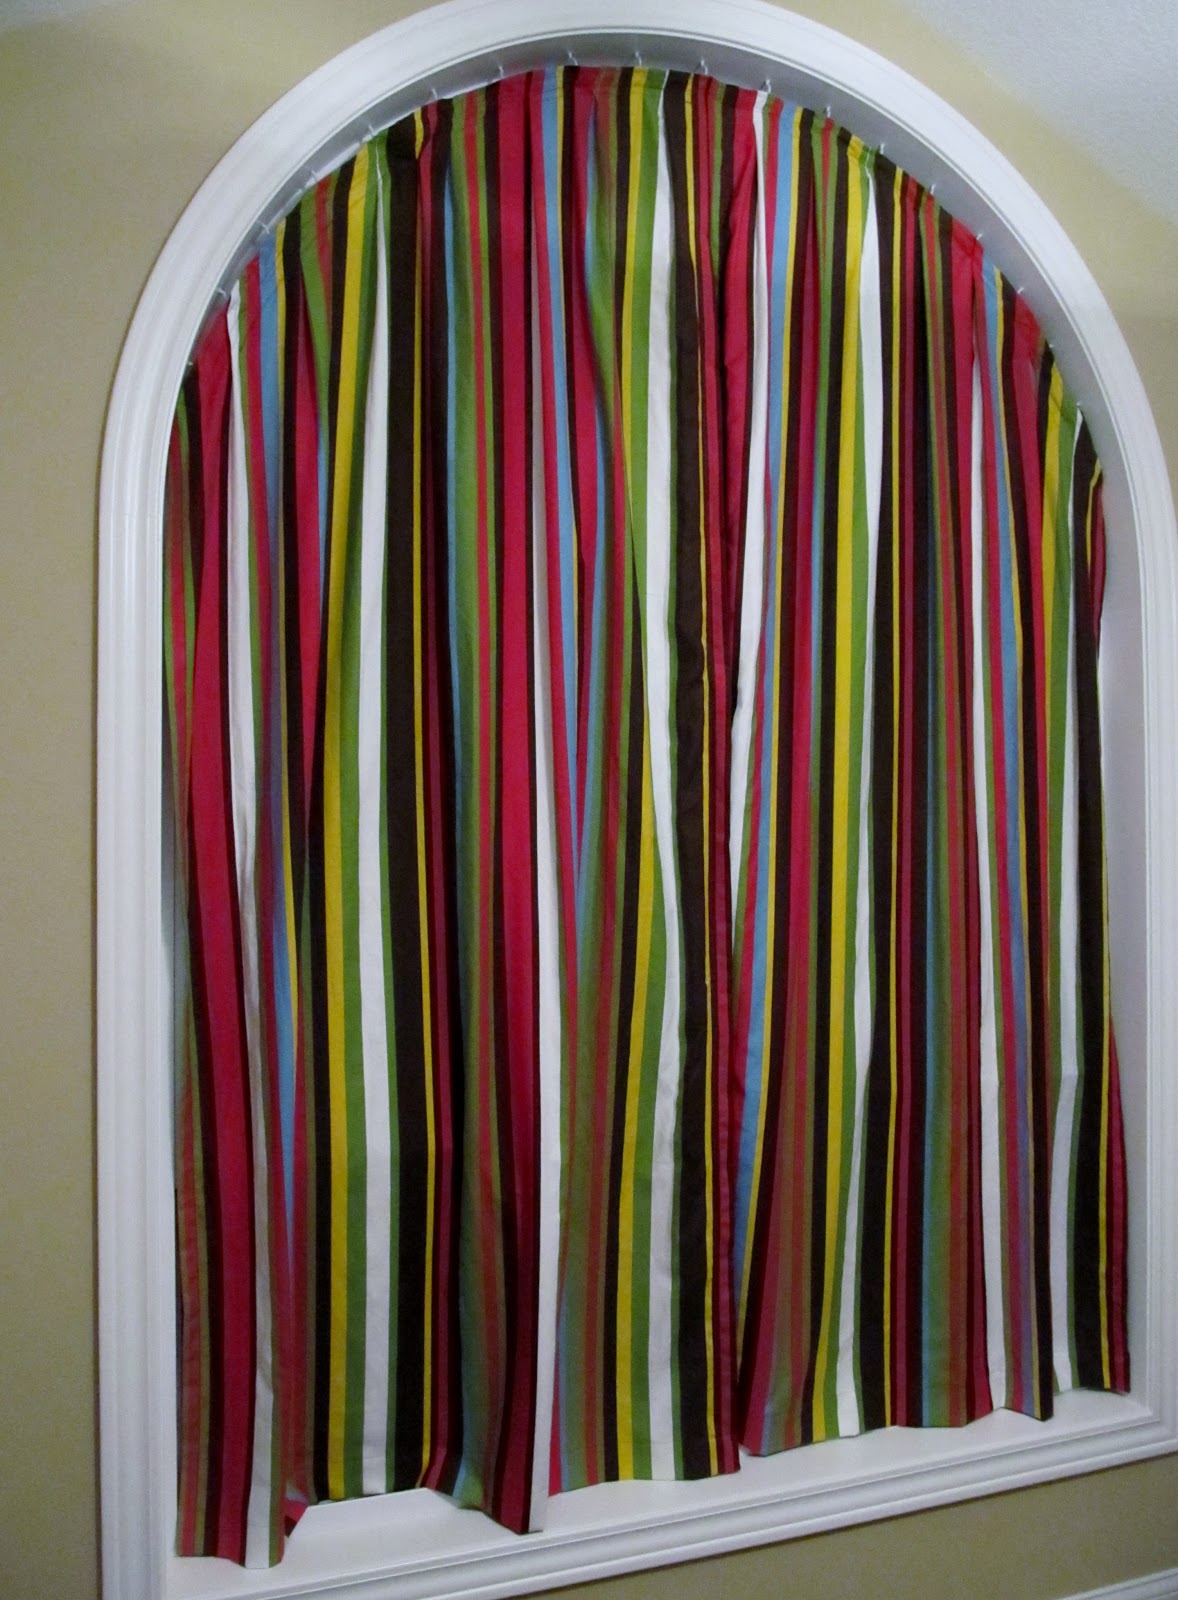 Curtains for half moon windows - Diy Curtains For An Arch Window More Details